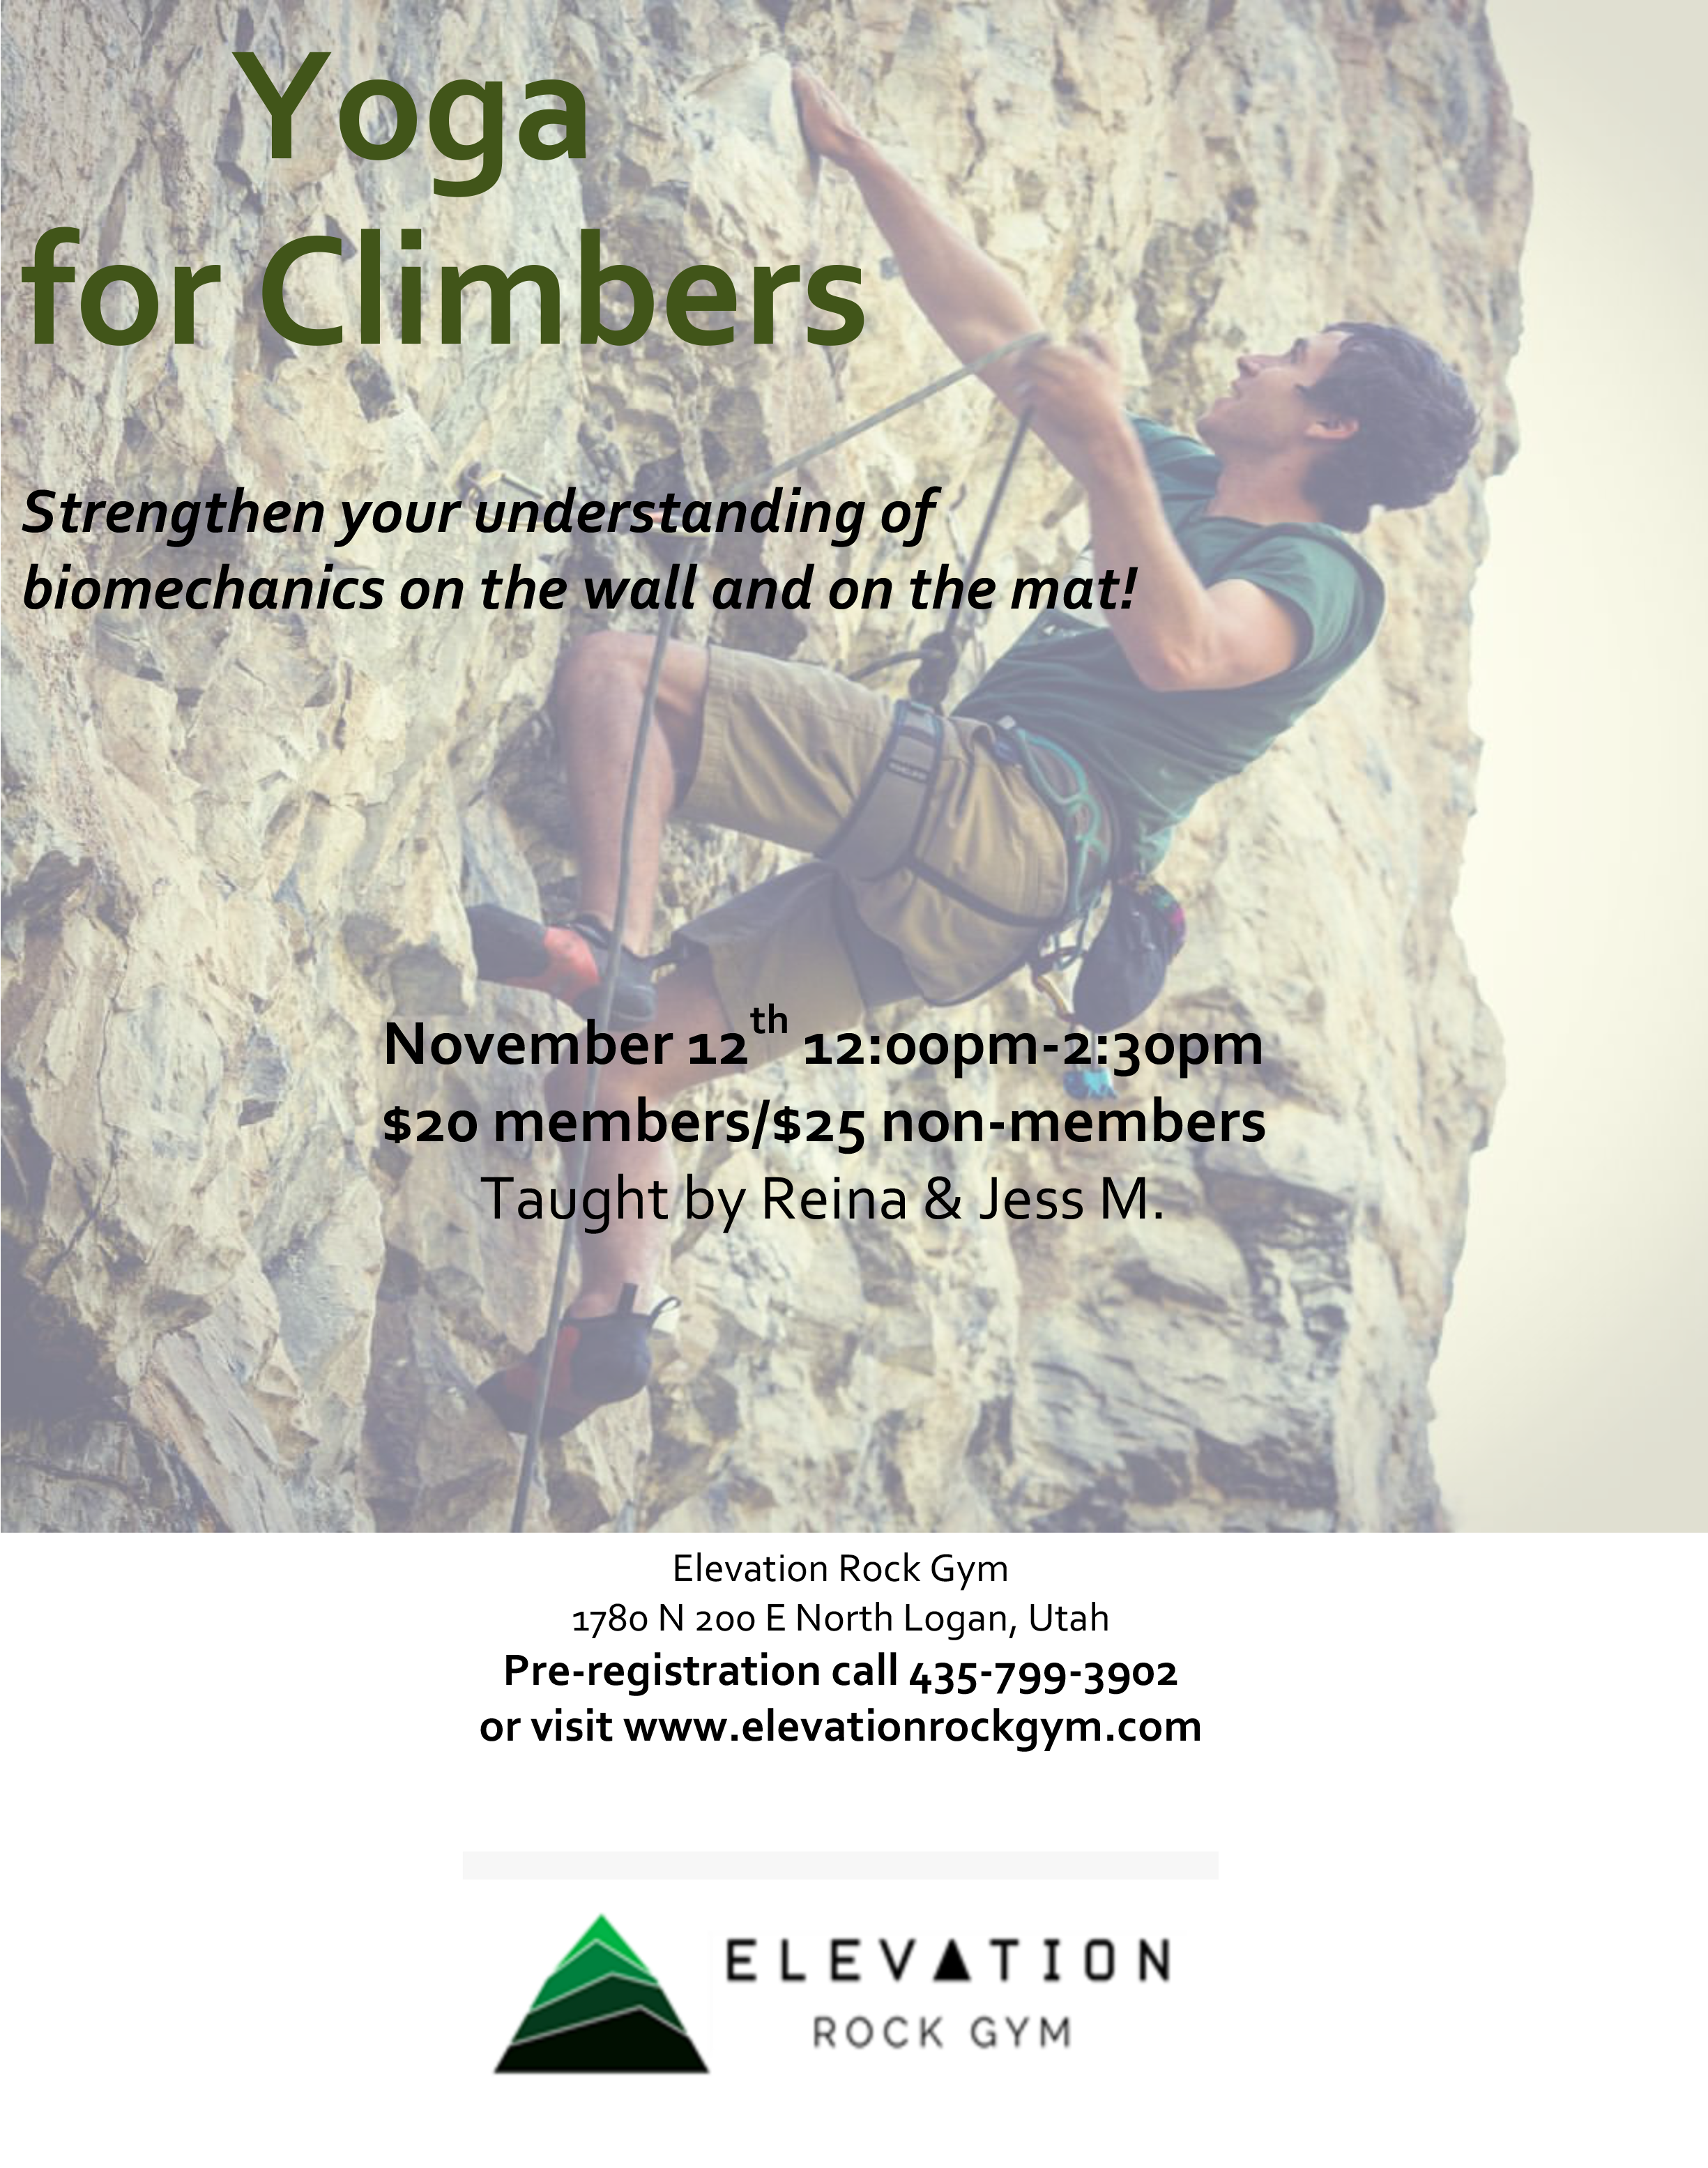 Yoga For Climbers Workshop